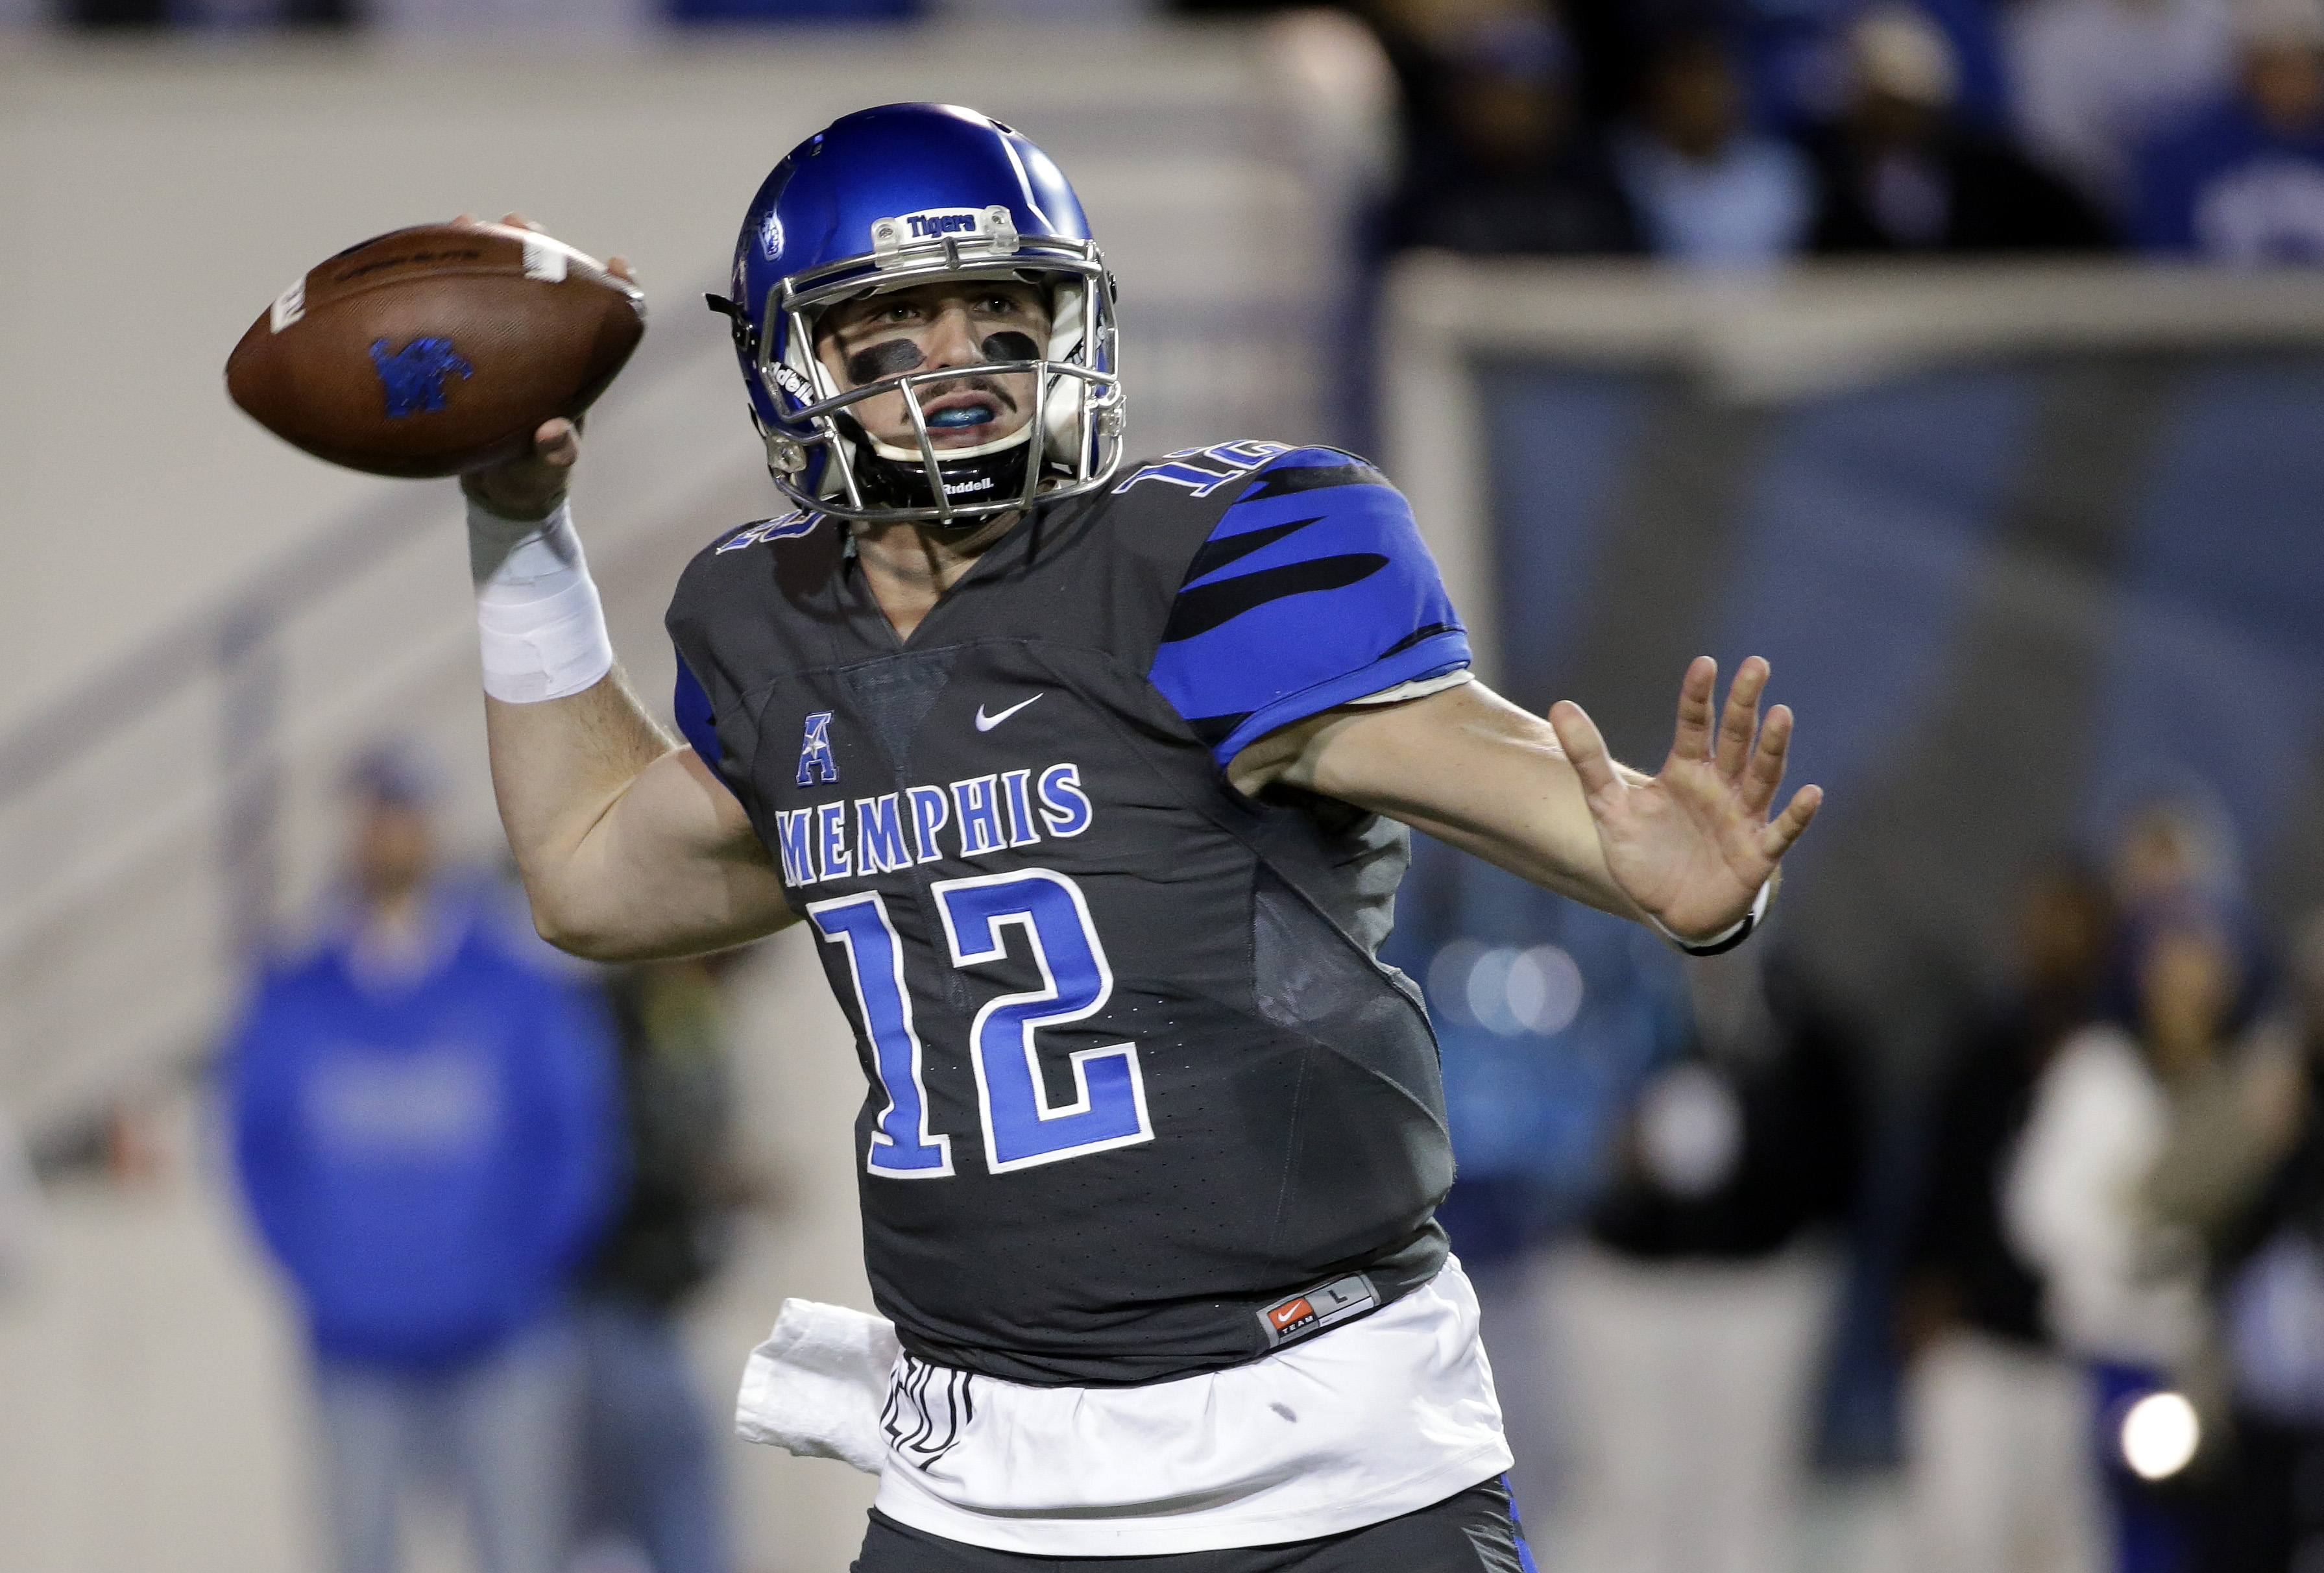 FILE - In this Nov. 7, 2015, file photo, Memphis quarterback Paxton Lynch (12) passes against Navy in the first half of an NCAA college football game in Memphis, Tenn. Memphis (9-3) and Lynch are aiming for another win over a Southeastern Conference team